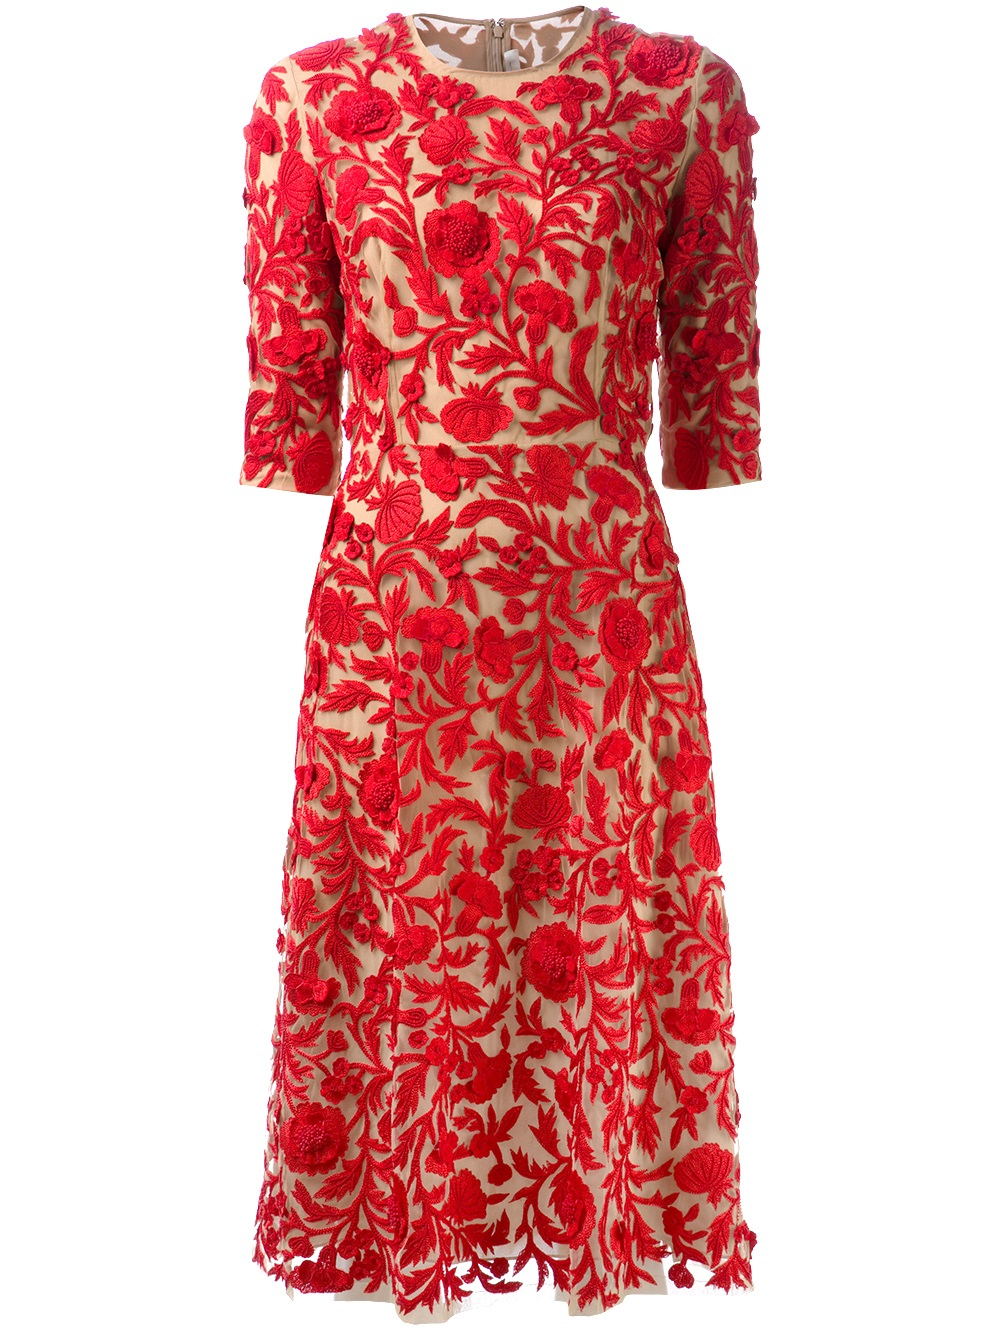 Naeem Khan Embroidered Floral Dress In Red Lyst